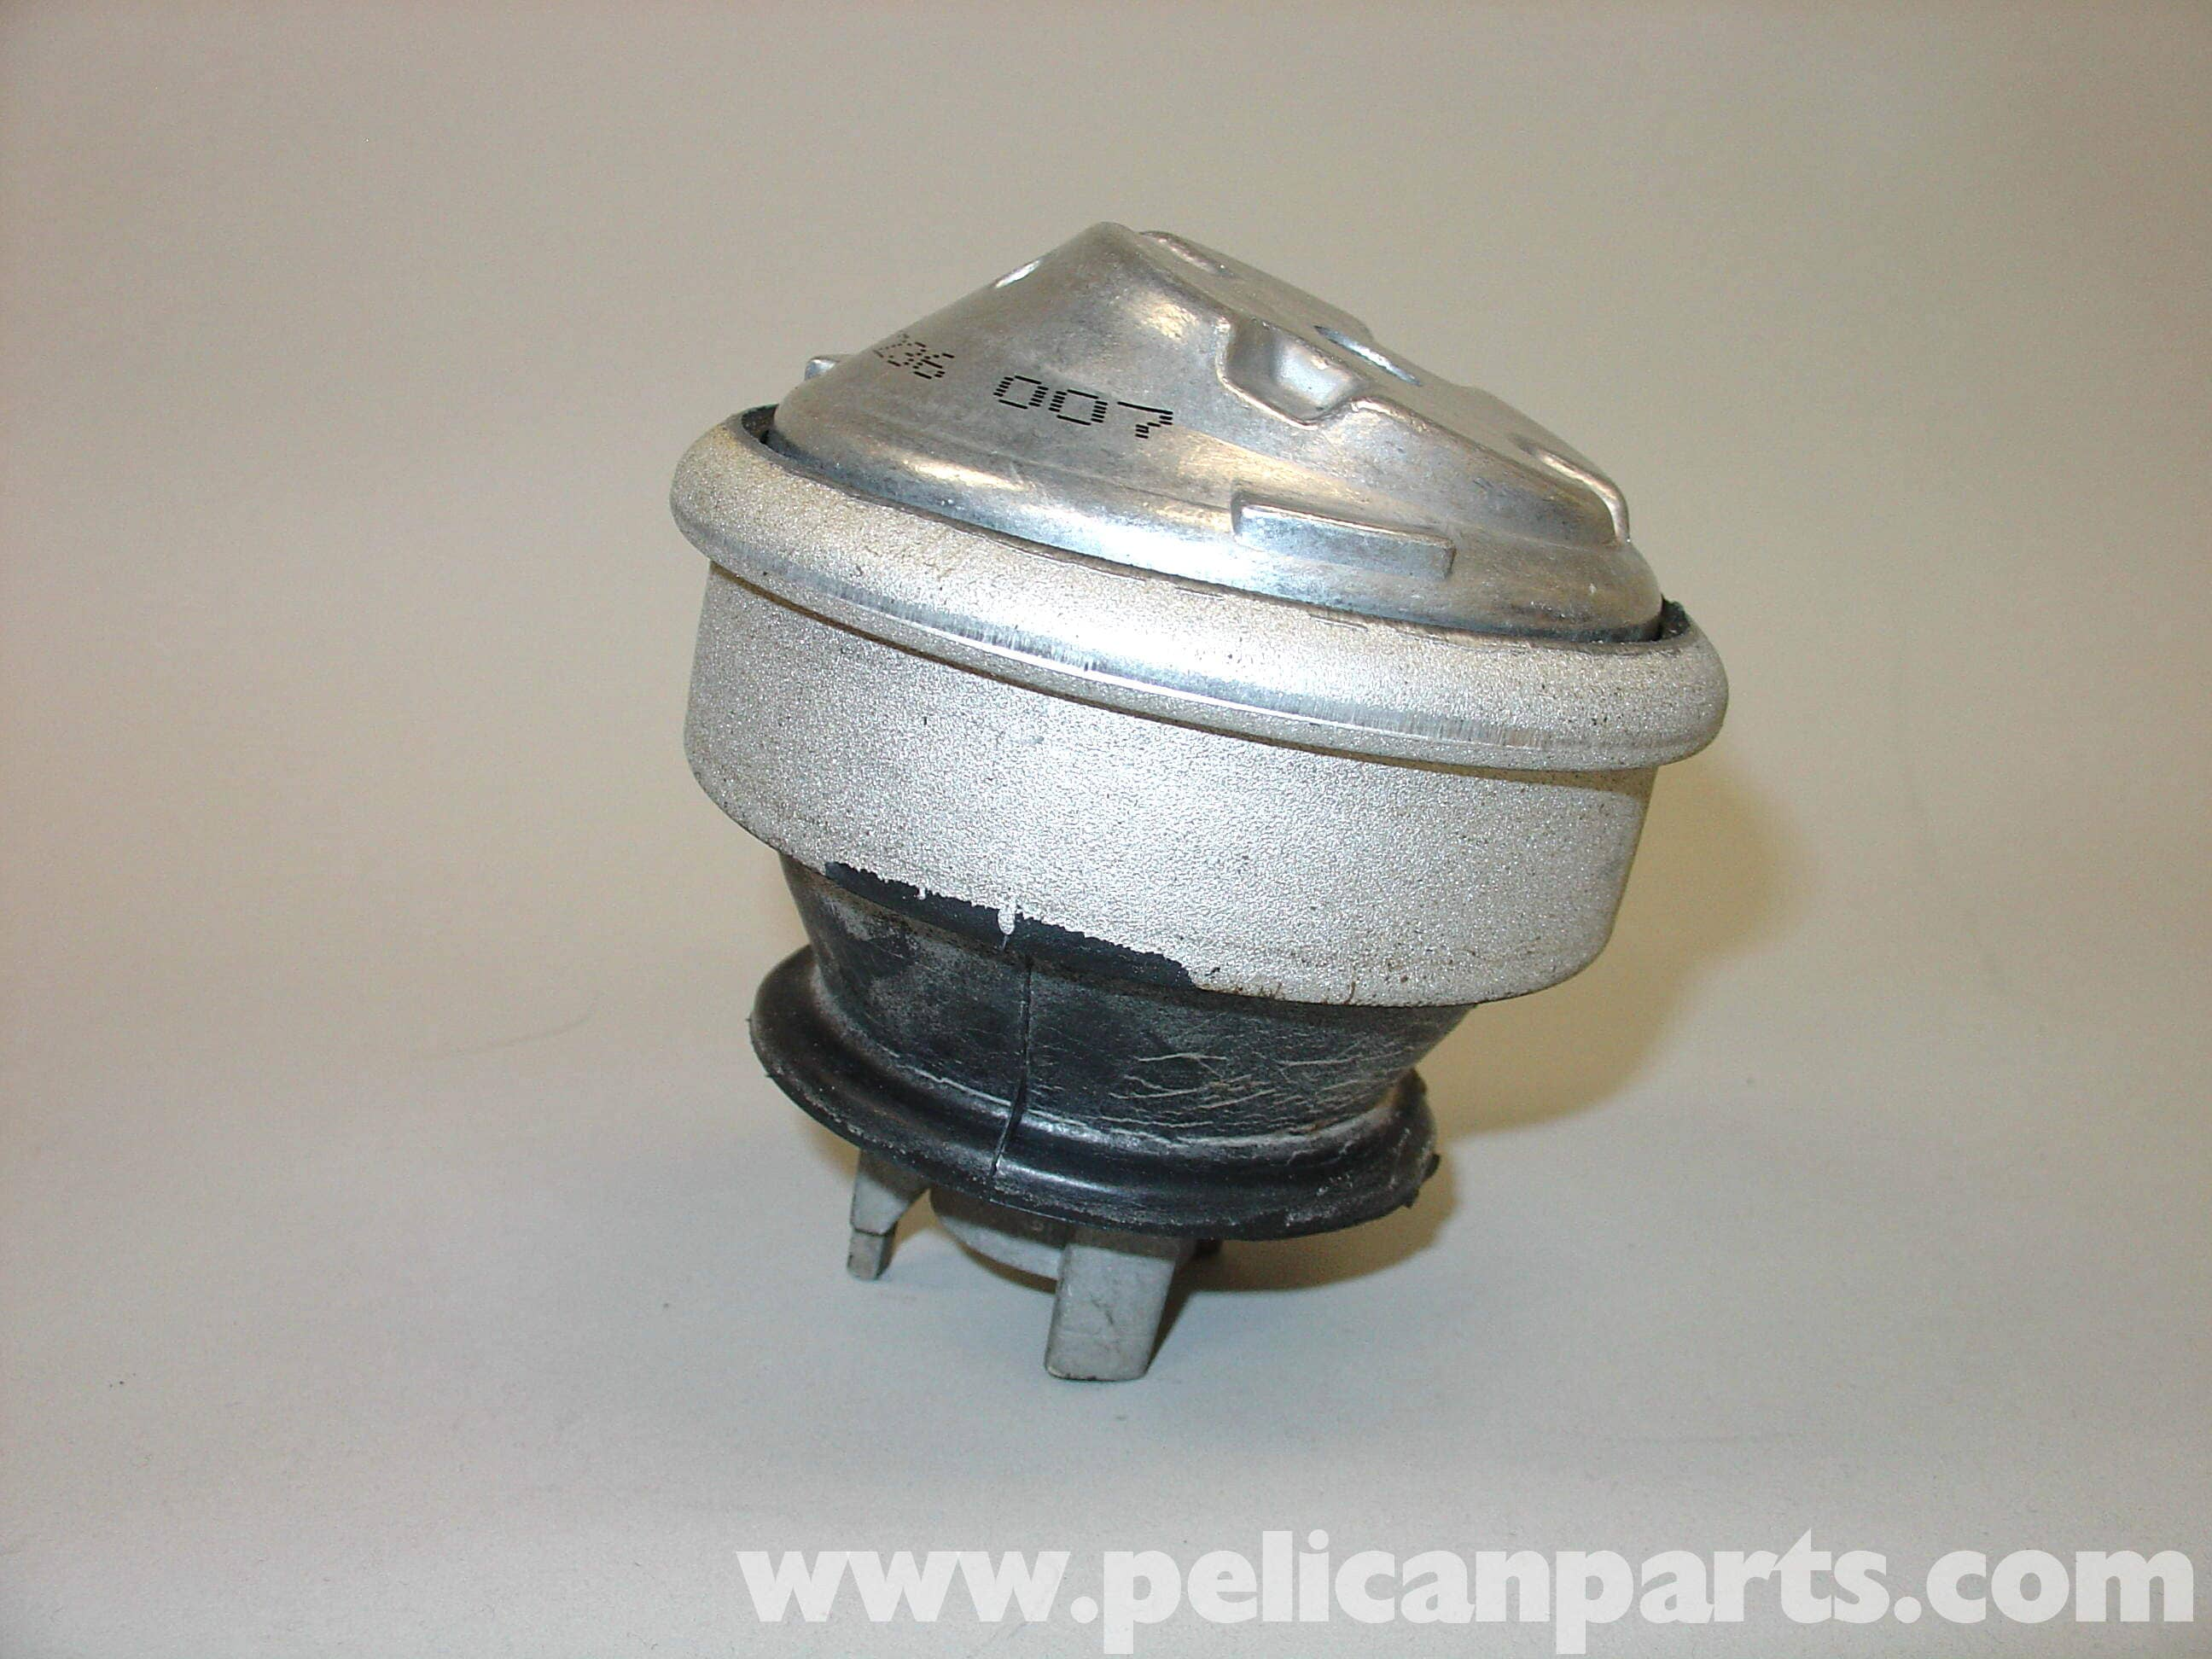 Mercedes benz w210 engine mount replacement 1996 03 e320 e420 pelican parts diy maintenance for Mercedes benz replacement parts for the interior